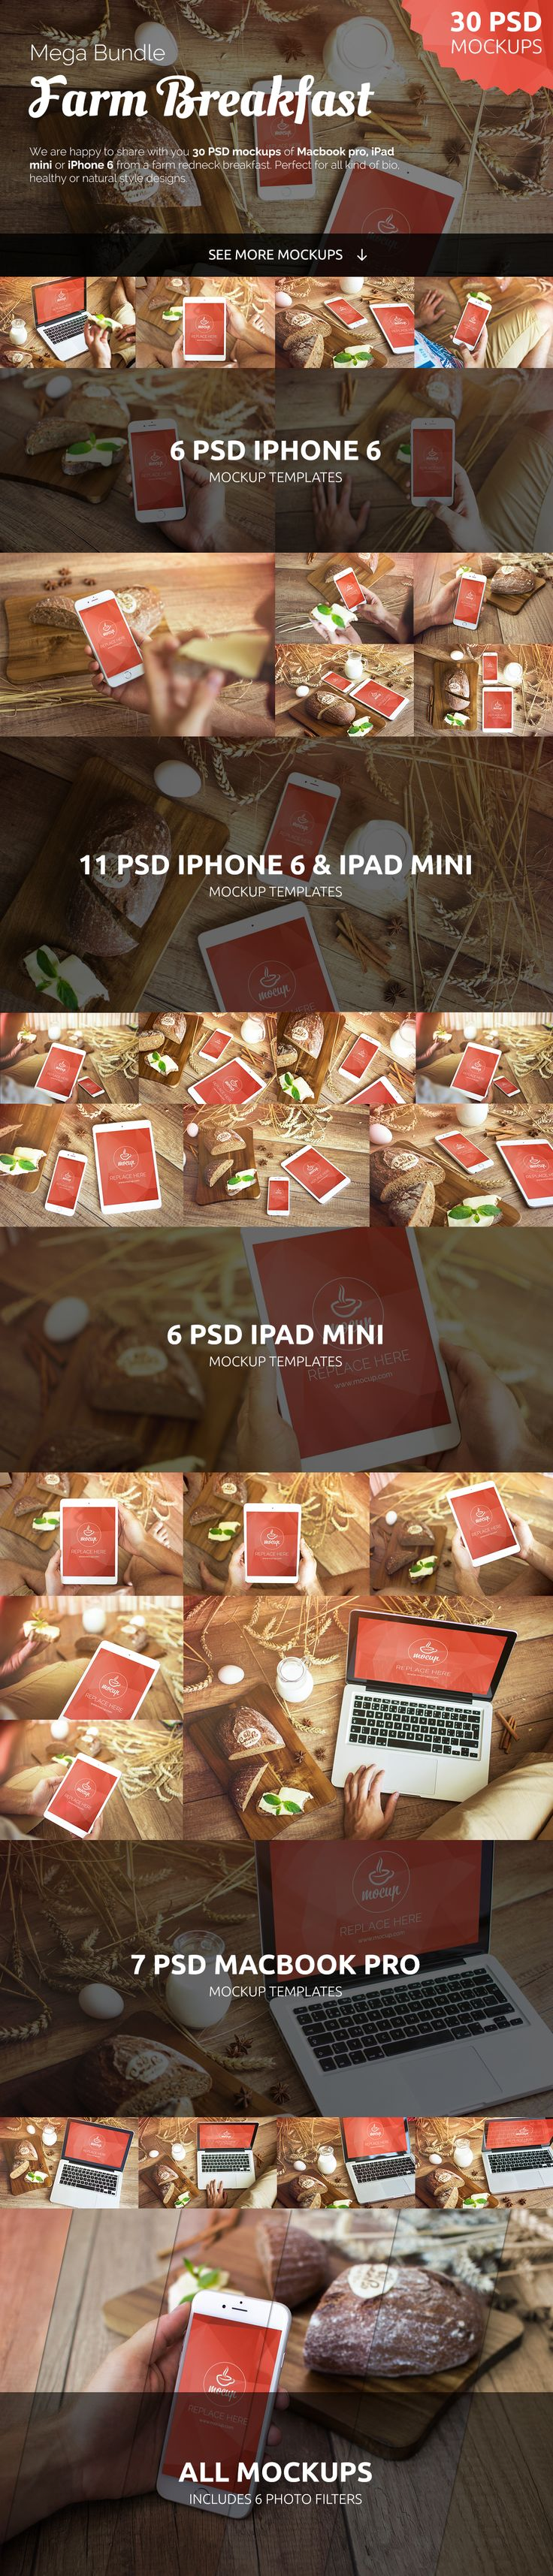 Look at 30 PSD bundle with rustic perfection scenes. Mockup photos with iPhone 6 , Macbook Pro and iPad Mini in foodie environment. Enjoy and use farm breakfast theme for all kind of bio, healthy or natural style designs.